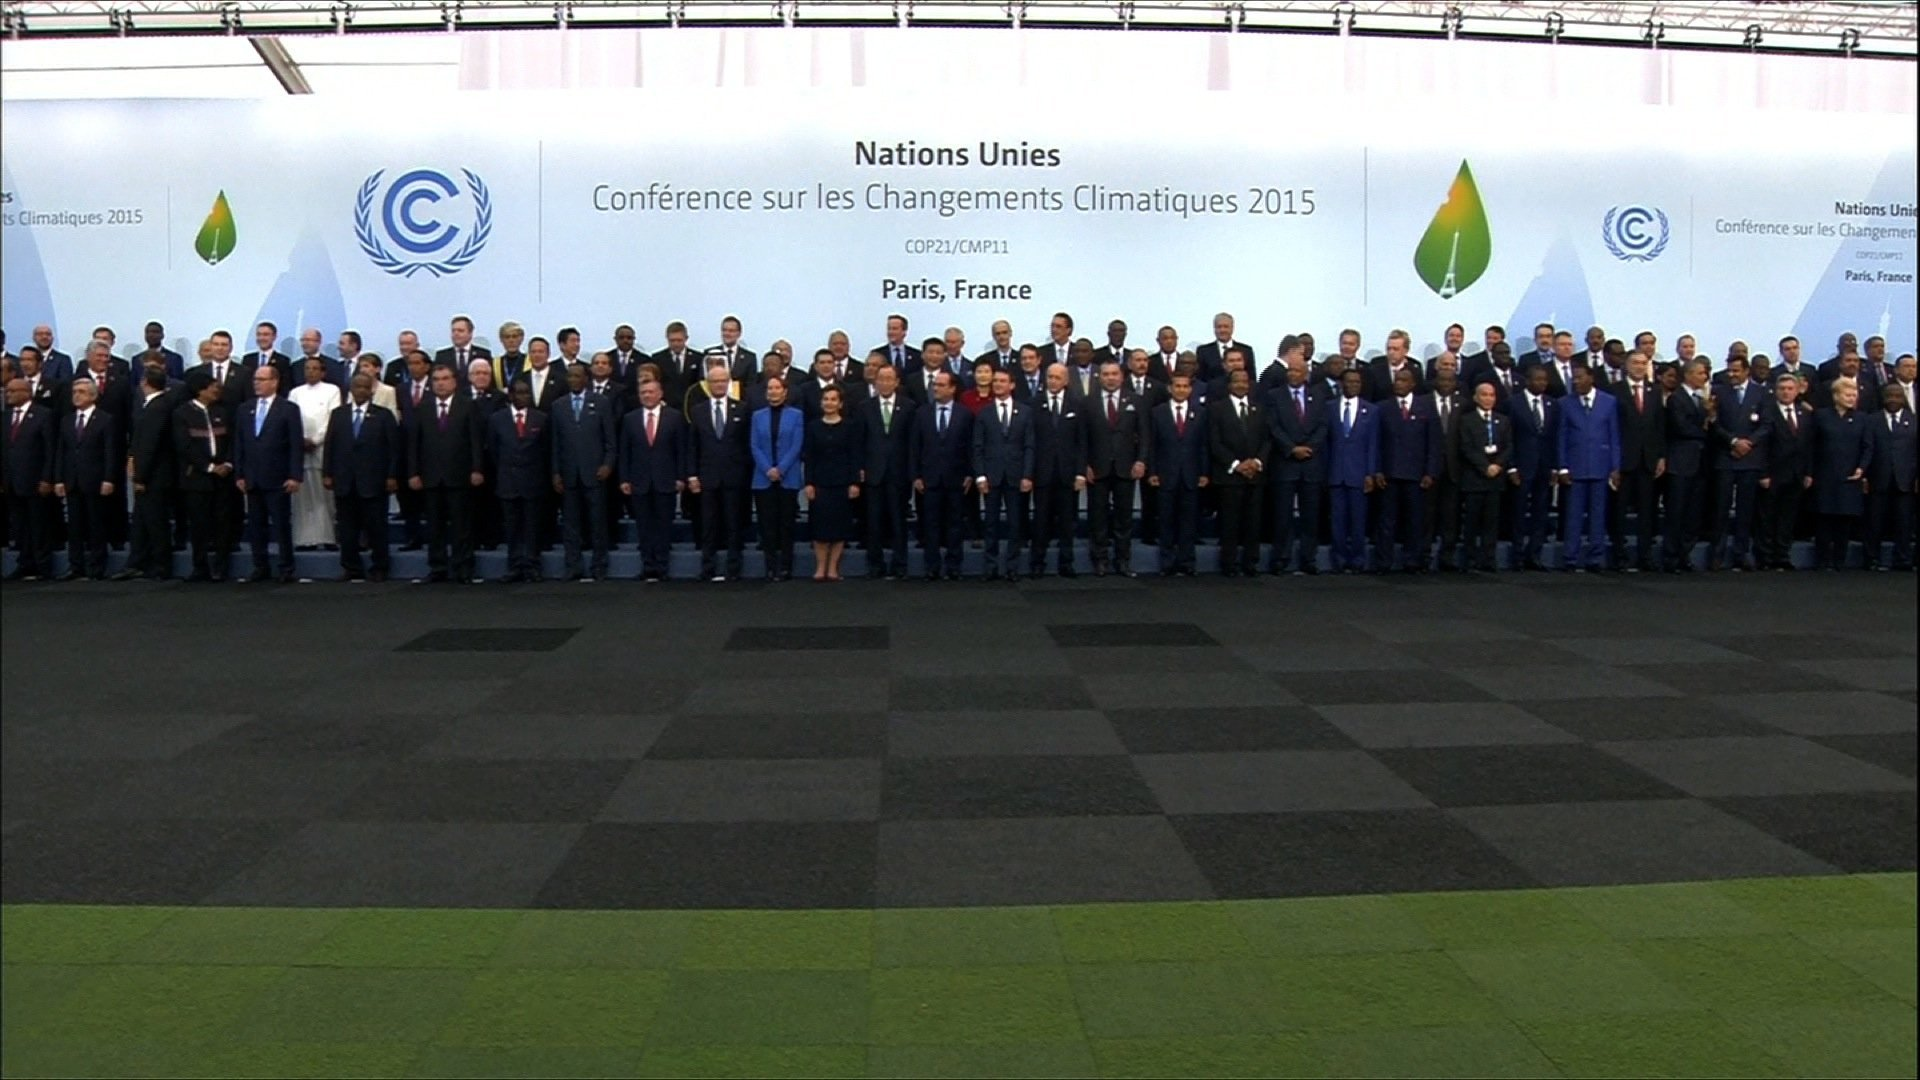 World leaders attend the COP 21 climate change summit in Paris, France.